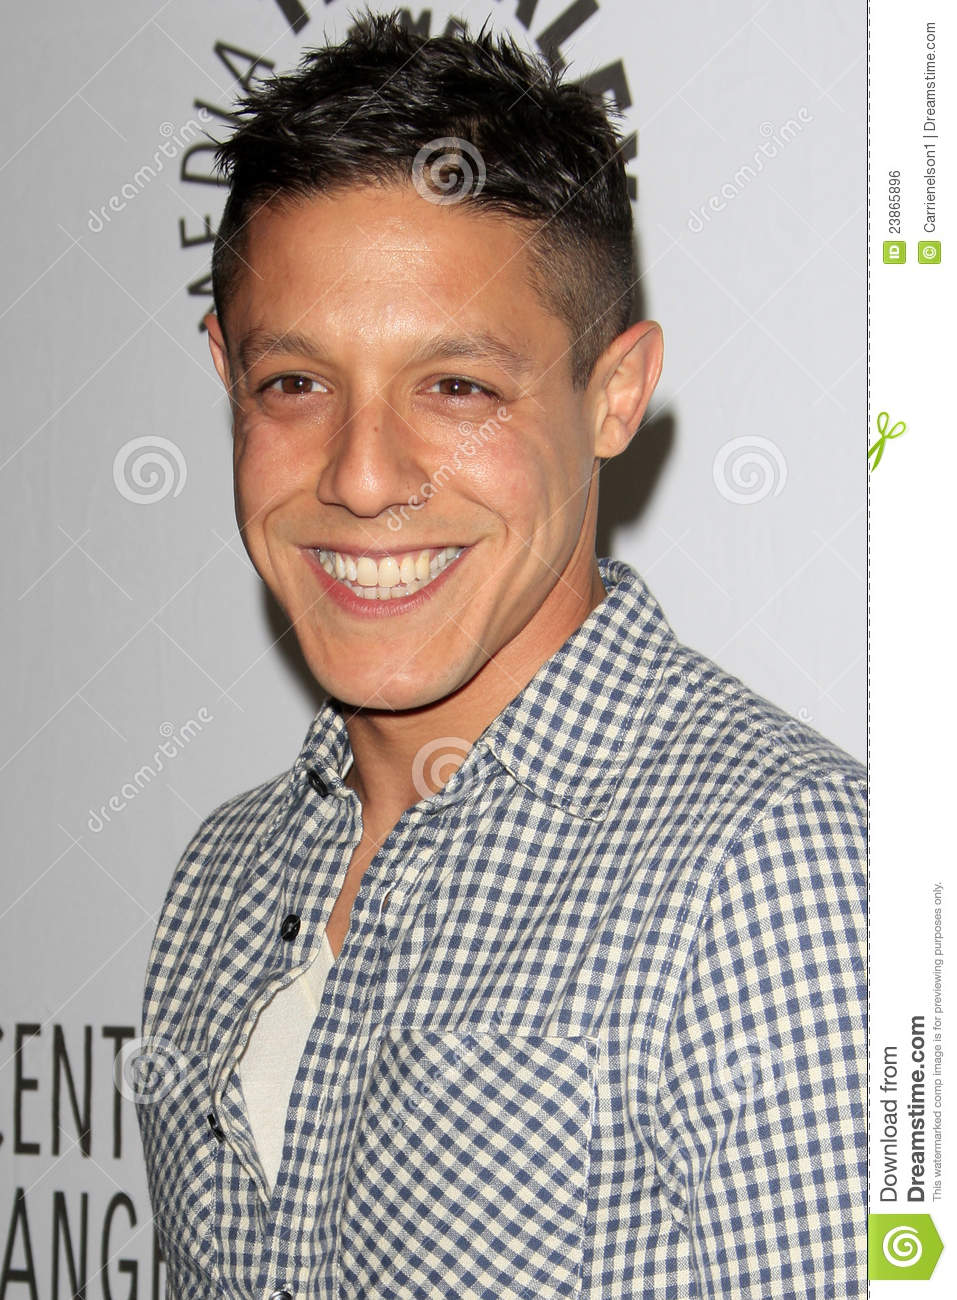 theo rossi cloverfieldtheo rossi gif, theo rossi tumblr, theo rossi fan site, theo rossi lost, theo rossi height, theo rossi height weight, theo rossi sarah jones, theo rossi quotes, theo rossi cloverfield, theo rossi wiki, theo rossi instagram, theo rossi luke cage, theo rossi, theo rossi wife, theo rossi twitter, theo rossi tattoos, theo rossi imdb, theo rossi grey's anatomy, theo rossi gay, theo rossi sons of anarchy